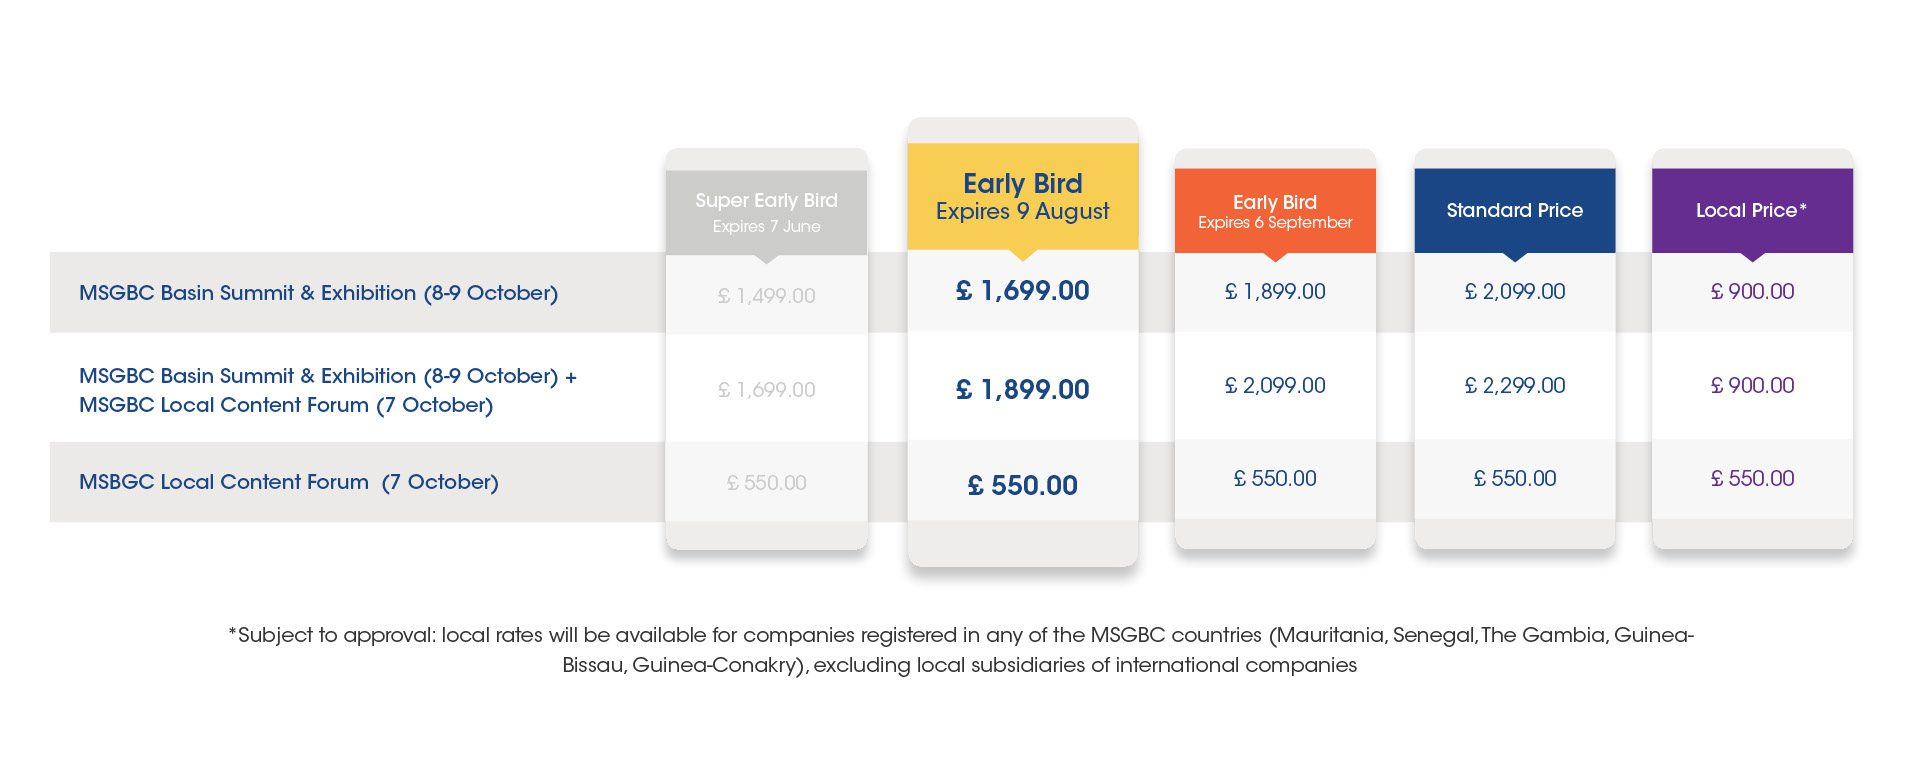 2019 MSGBC Pricing Table | Oil & Gas | Events